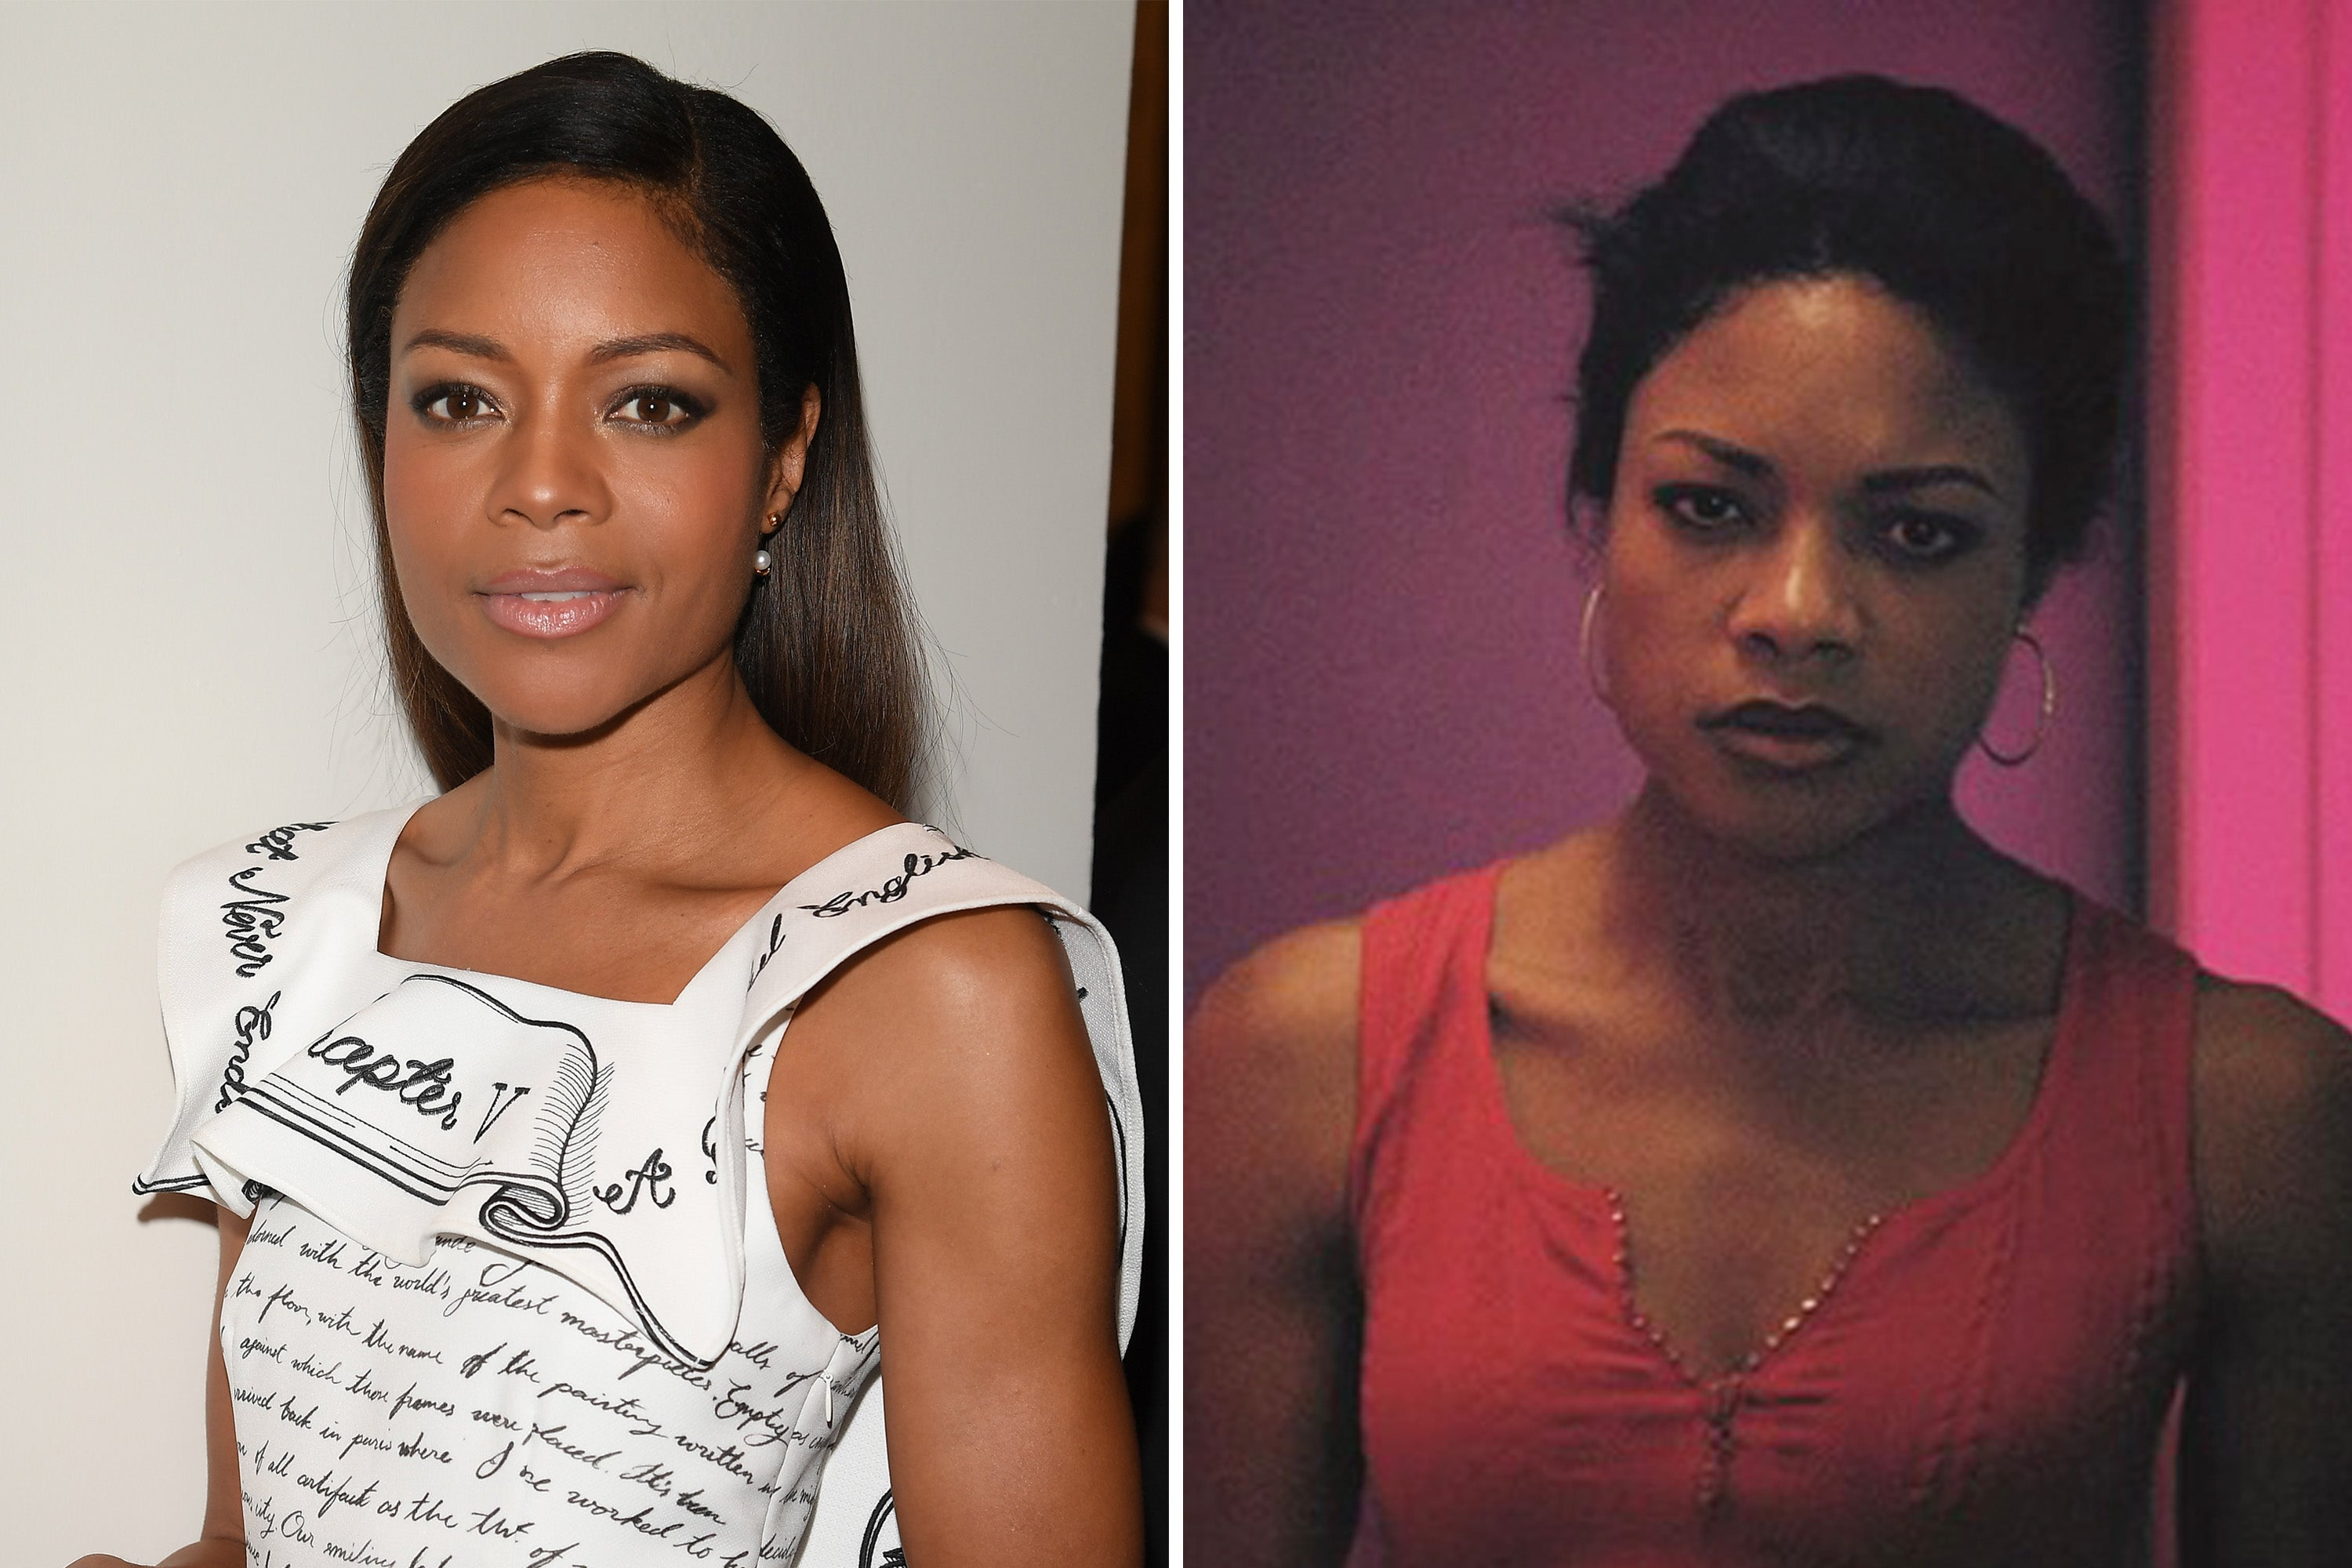 'Moonlight's' Naomie Harris On Why She Was Hesitant To Take The Moving Role